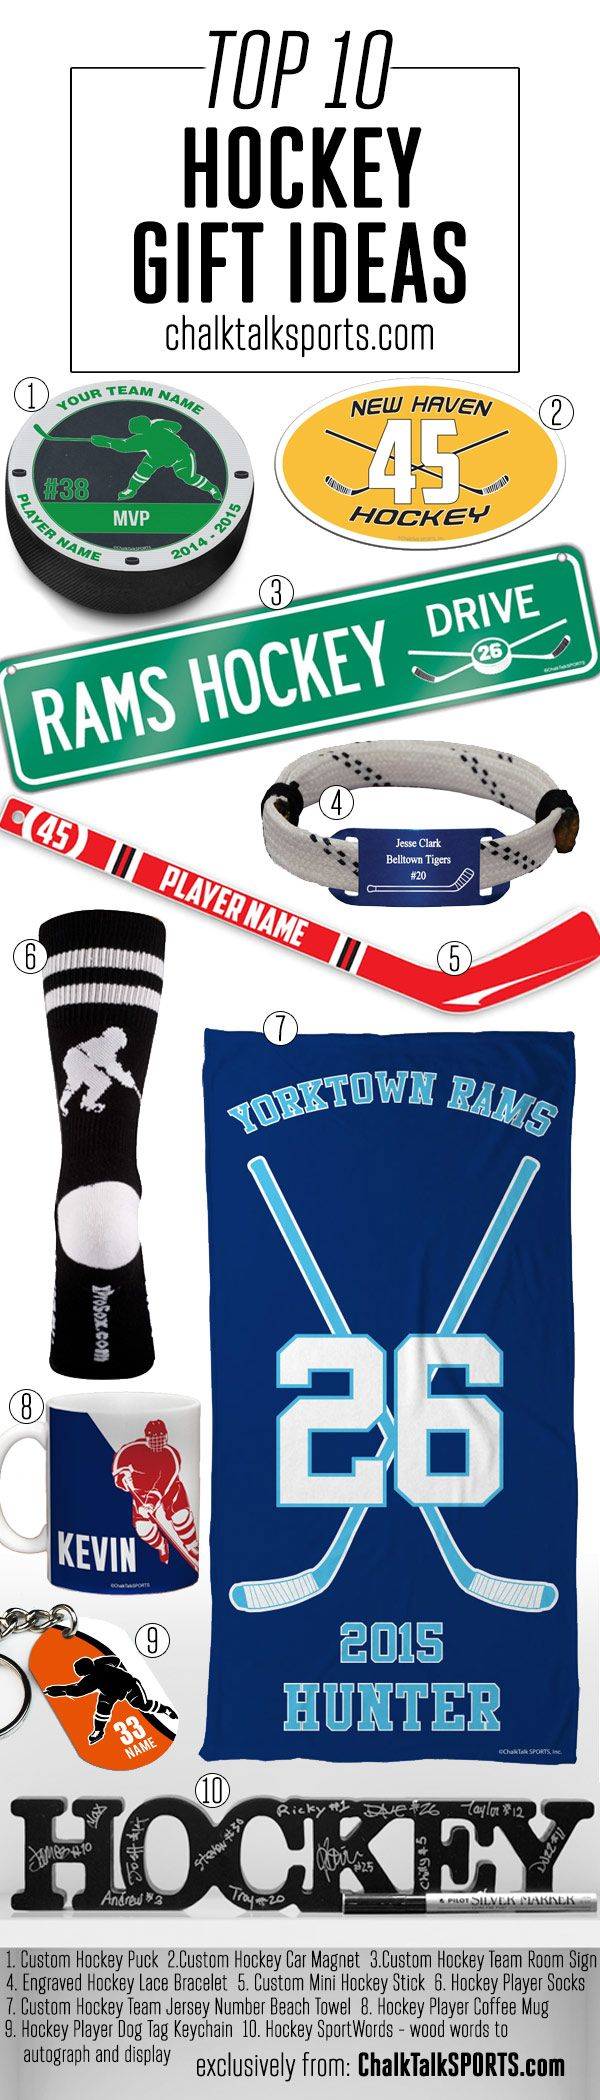 Top 10 Hockey Gift ideas. Perfect gift ideas for hockey players. End of season hockey coach gifts and hockey player gift ideas. These hockey gifts are made-to-order and can be personalized with your team and hockey player's info! All these plus a lot more at chalktalksports.com #hockey